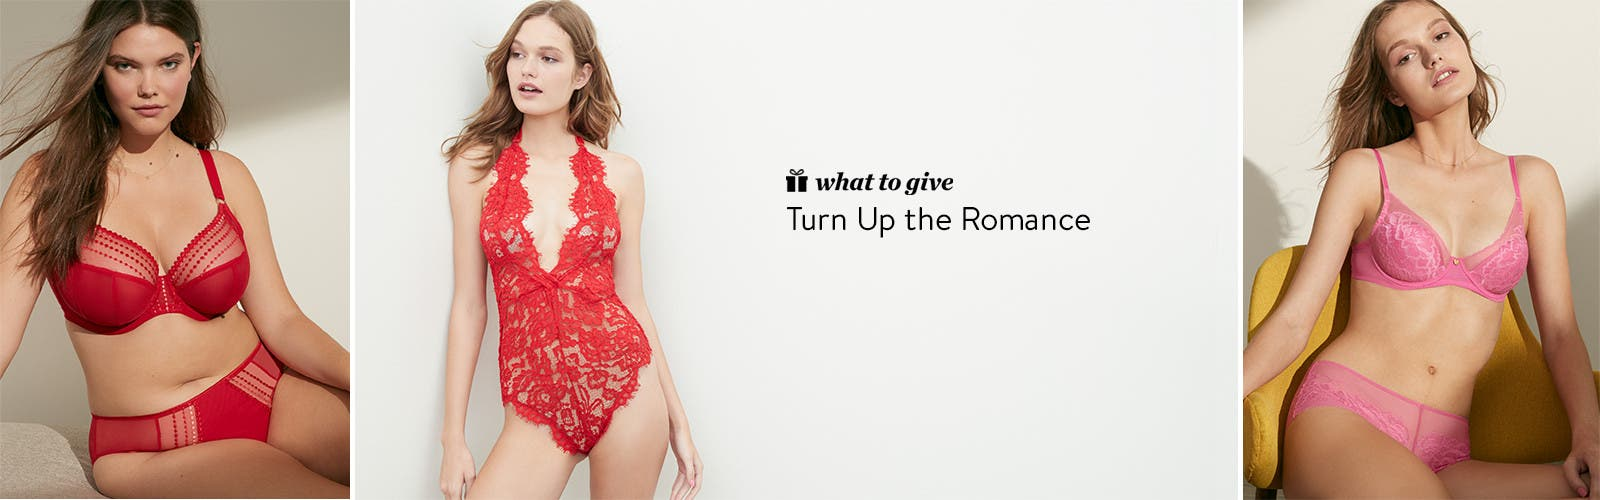 Turn up the romance: Valentine's Day lingerie gifts.